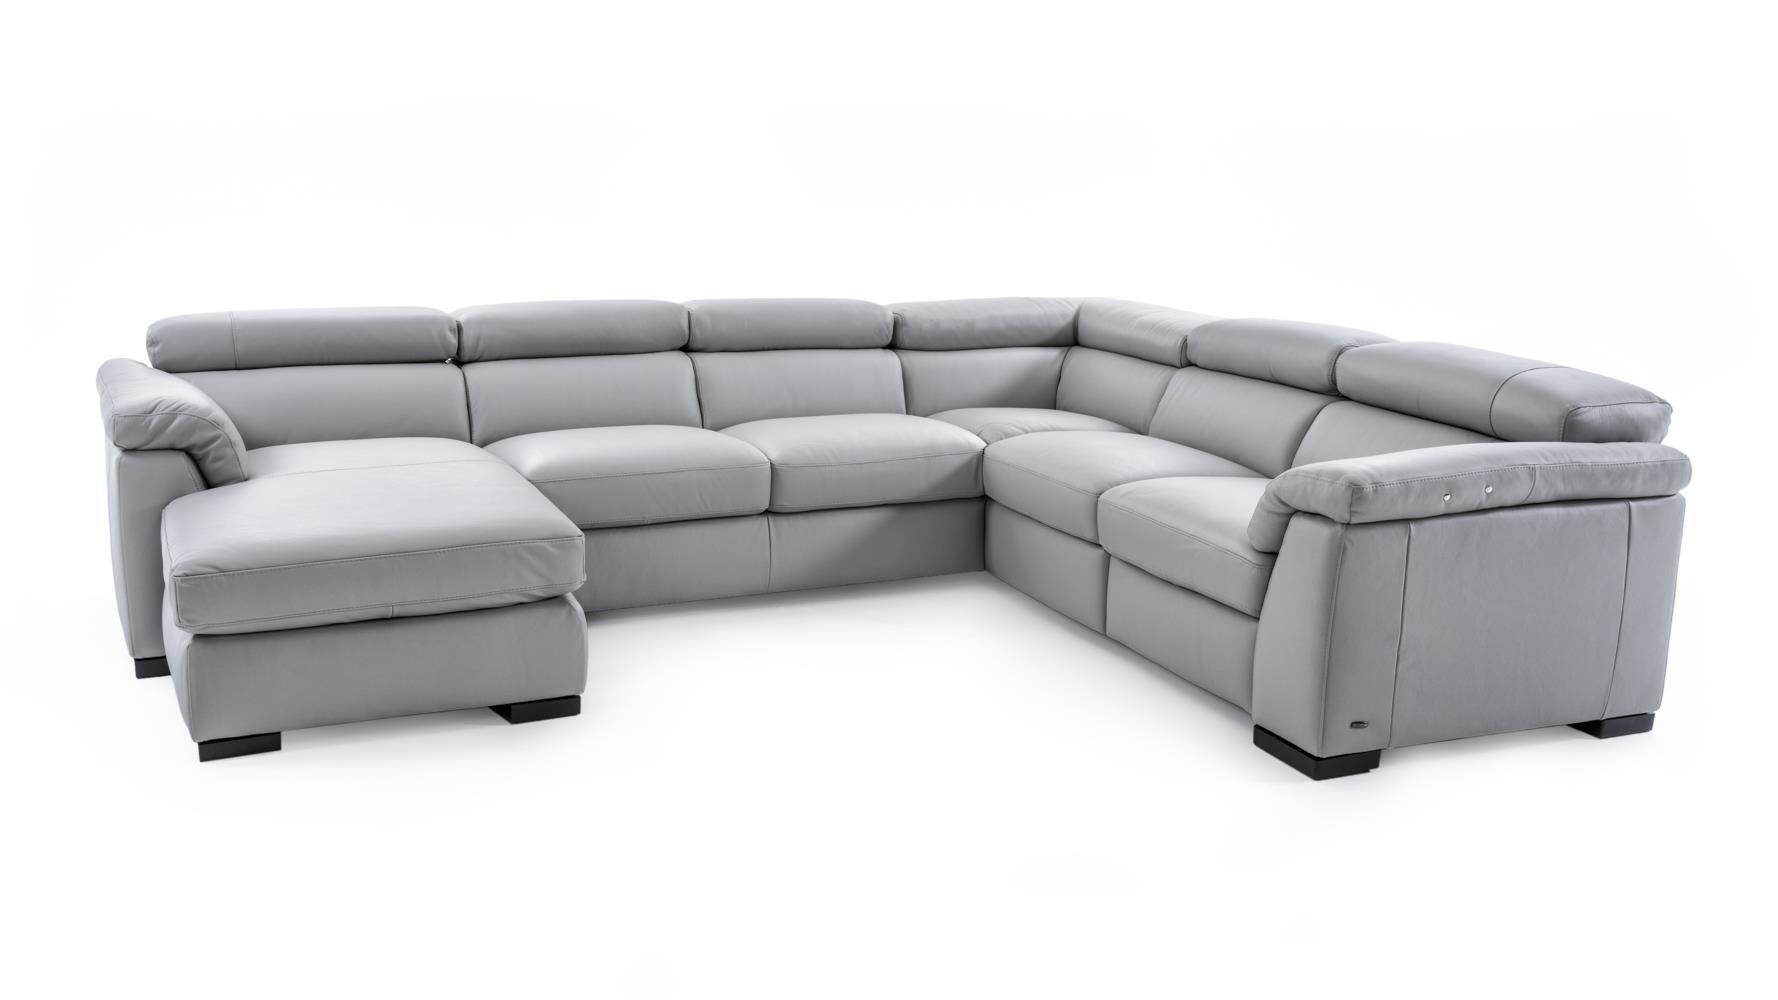 Natuzzi Editions B634 Contemporary Leather Reclining Sectional Pertaining To Natuzzi Microfiber Sectional Sofas (Image 6 of 20)